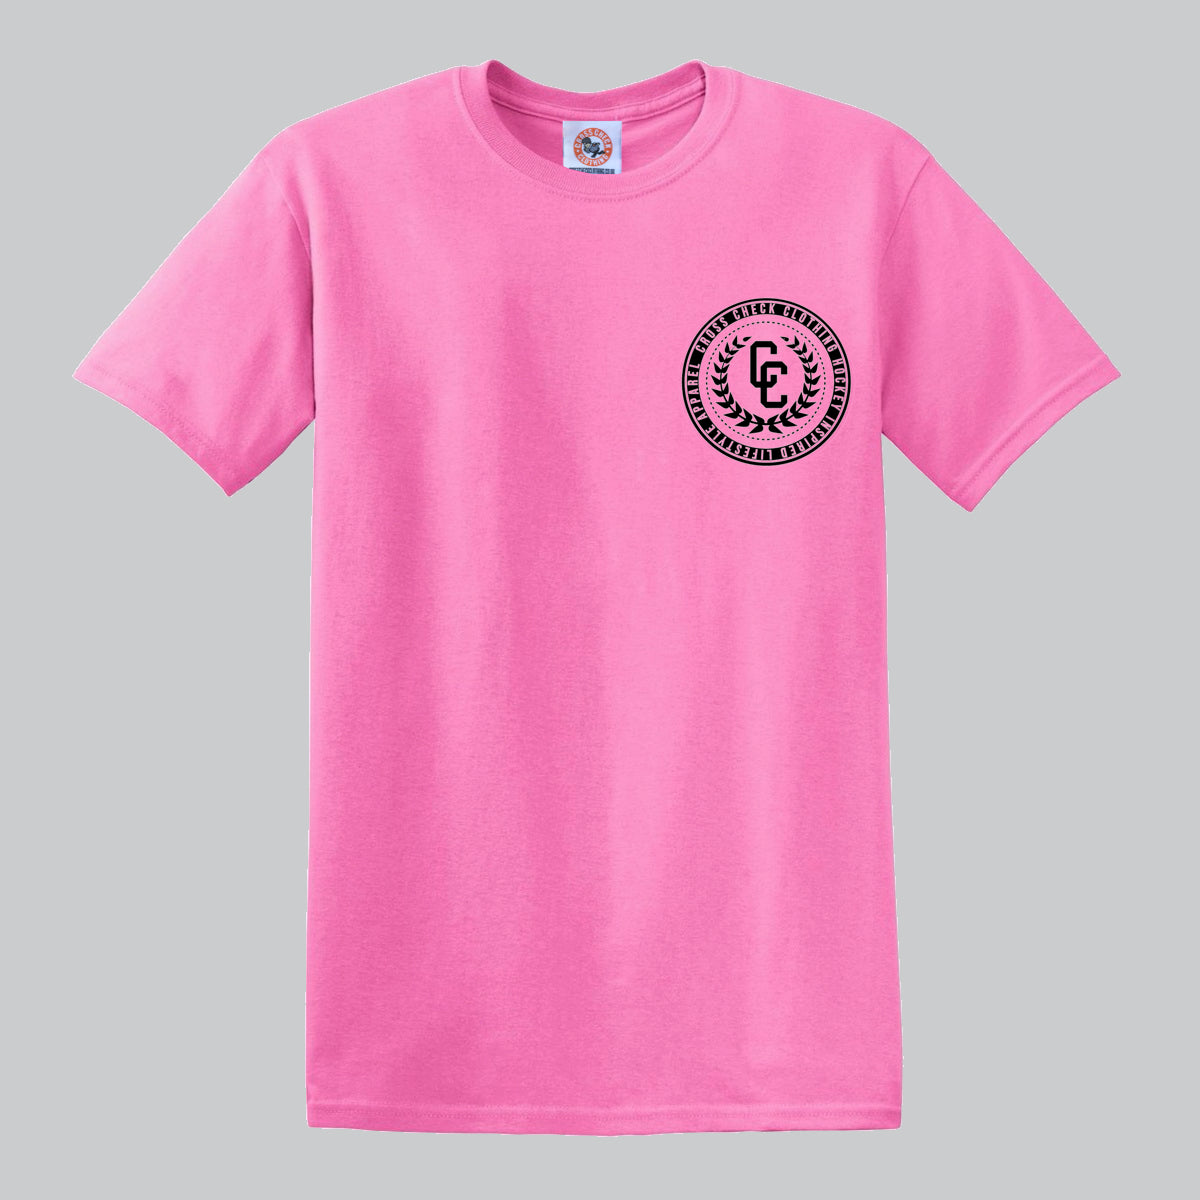 College Pink Shirt - Cross Check Clothing